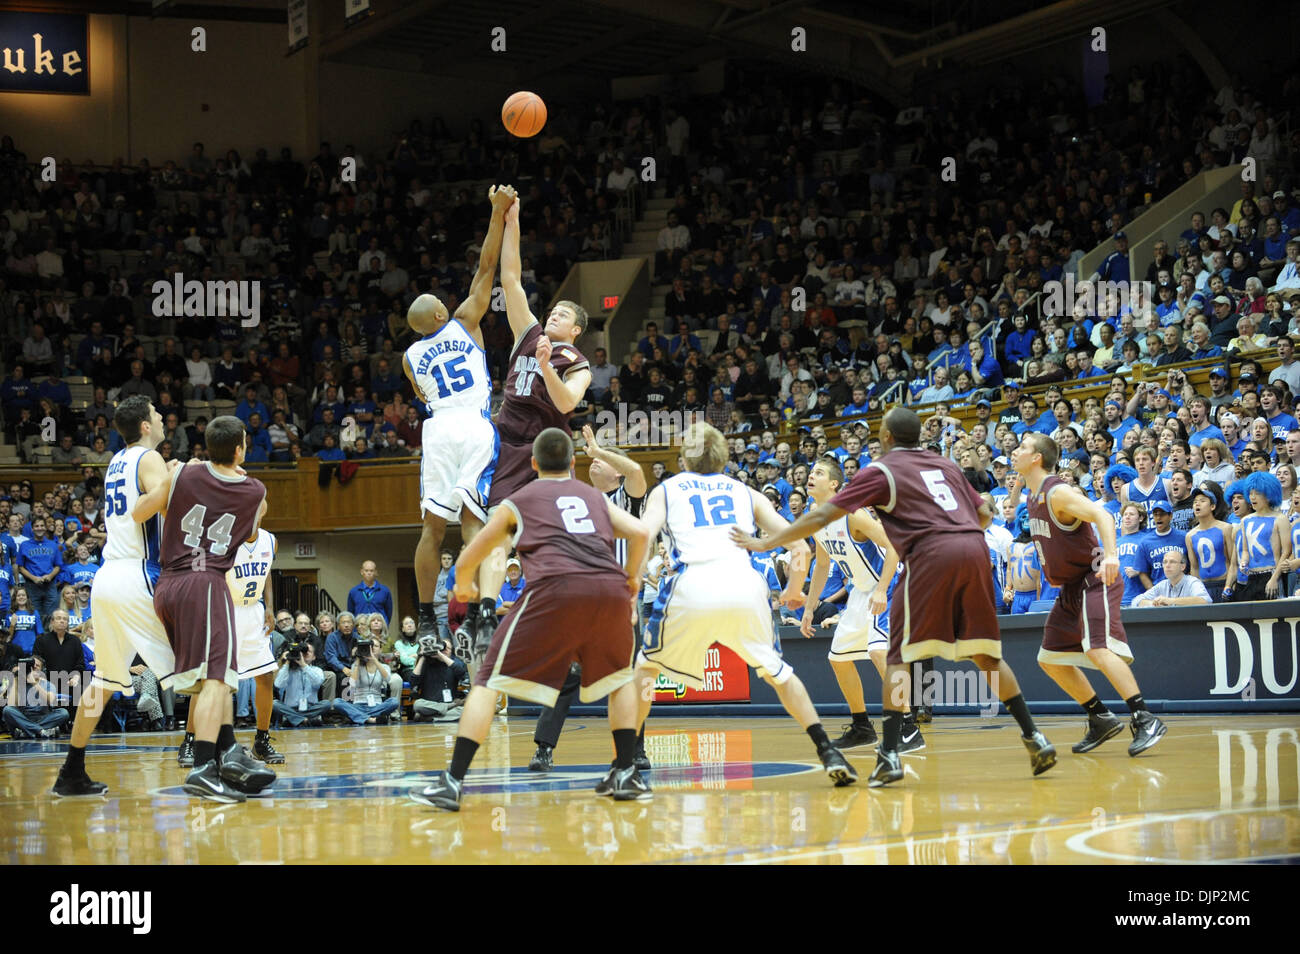 Nov 23, 2008 - Durham, North Carolina, USA - NCAA Basketball: The Duke University Bluedevils defeat the University of Montana Grizzlies with a final score of 78-58 as they played mens college basketball at Cameron Indoor Stadium located in Durham.   (Credit Image: © Jason Moore/ZUMA Press) - Stock Image